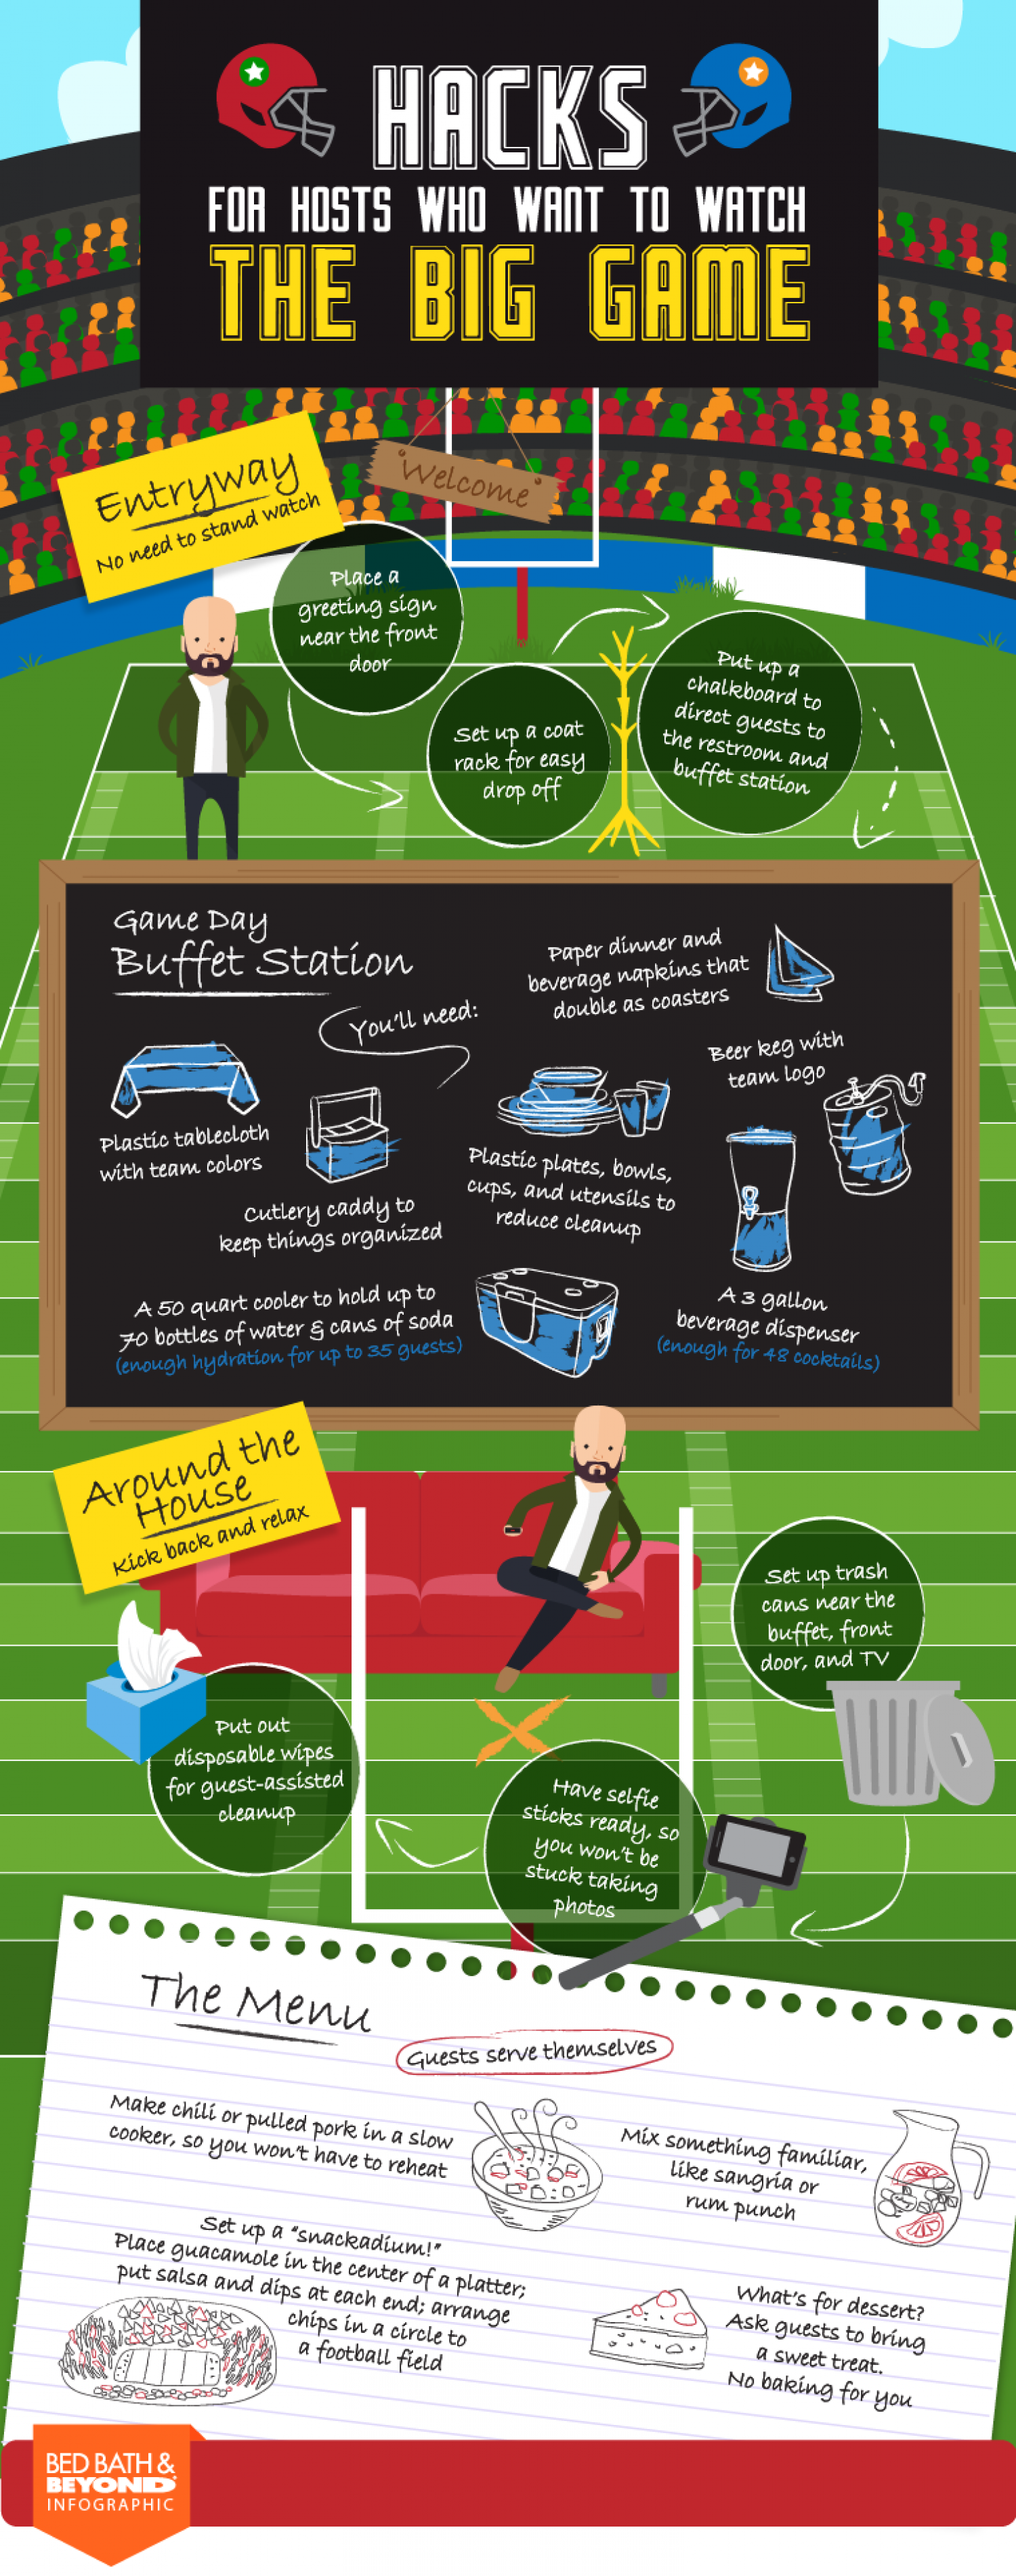 Hacks for host who want to watch the big game Infographic